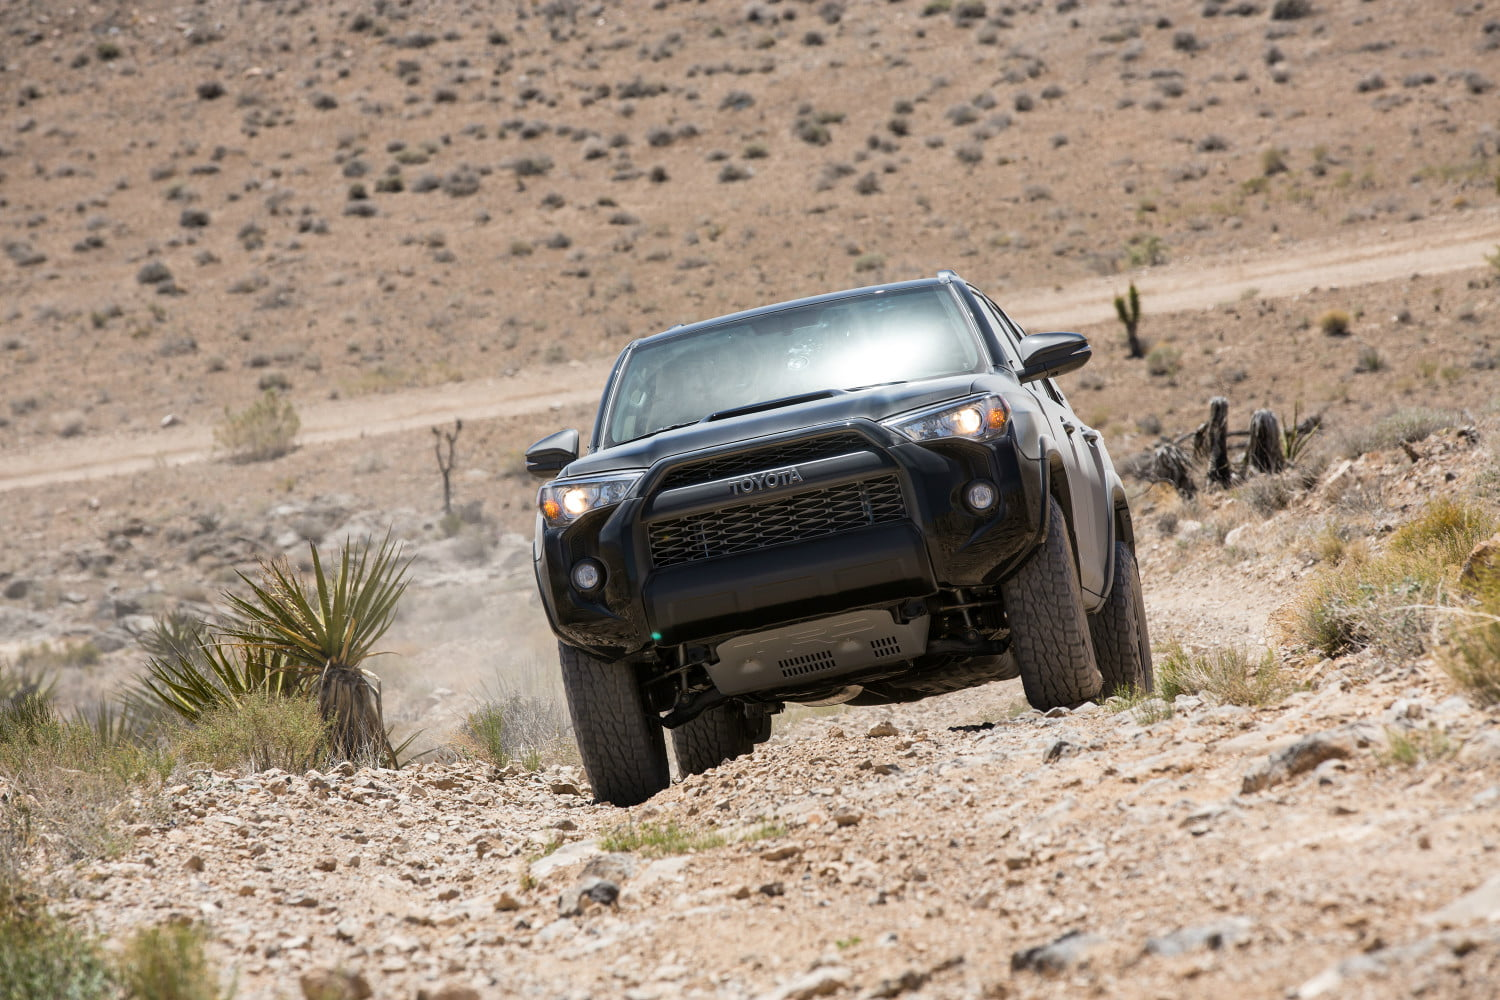 2018 toyota 4runner specs release date price performance 2015 trd pro 02